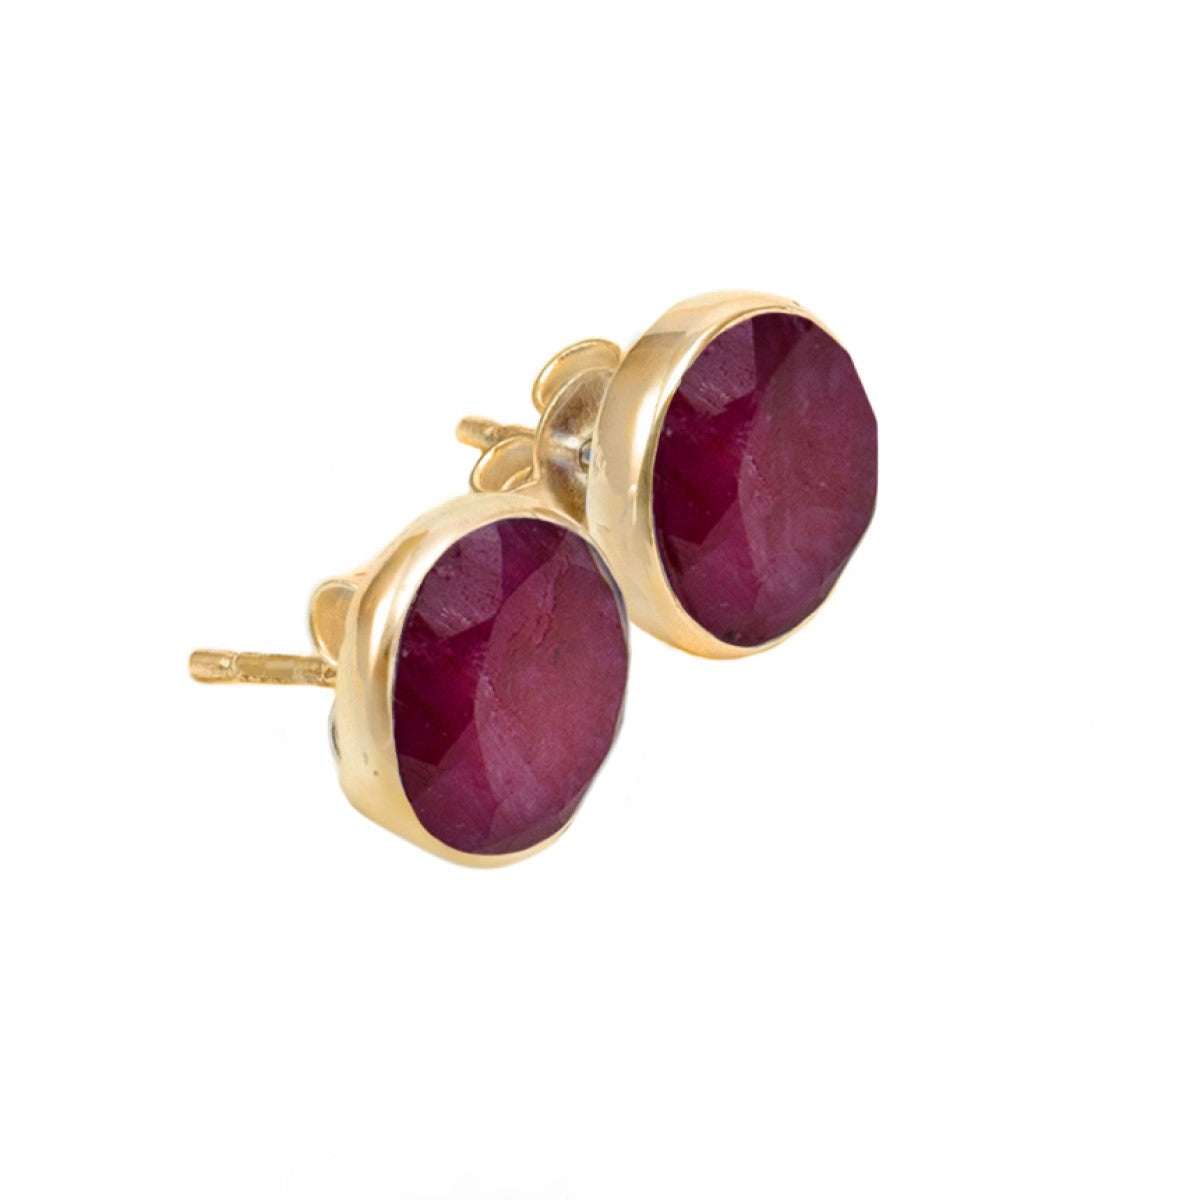 Ruby Quartz Gold Plated Sterling Silver Semiprecious Gemstone Stud Earrings - Round